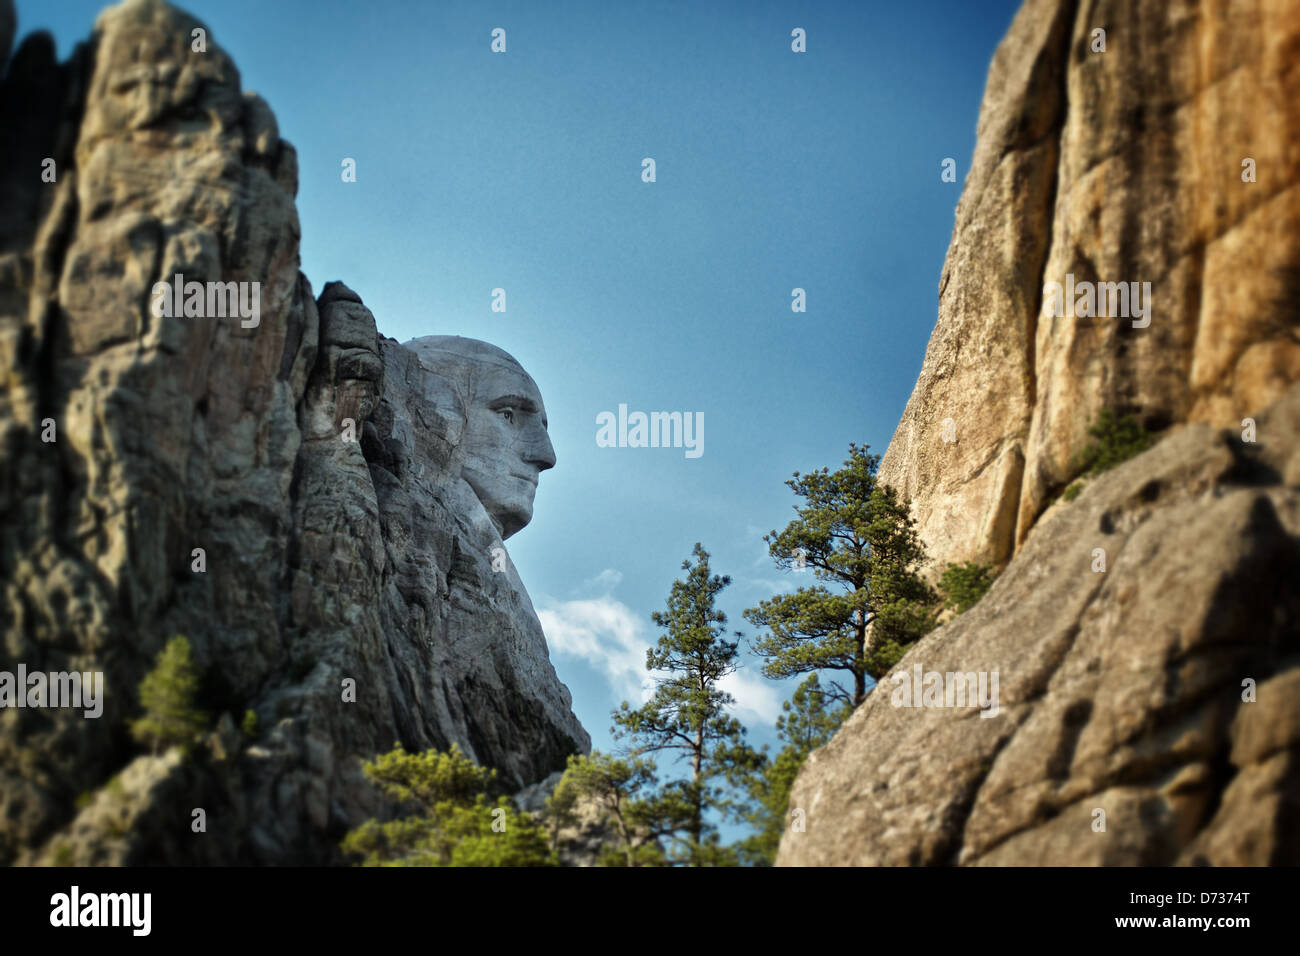 George Washington's profile stands out from the carving of Mount Rushmore. Stock Photo